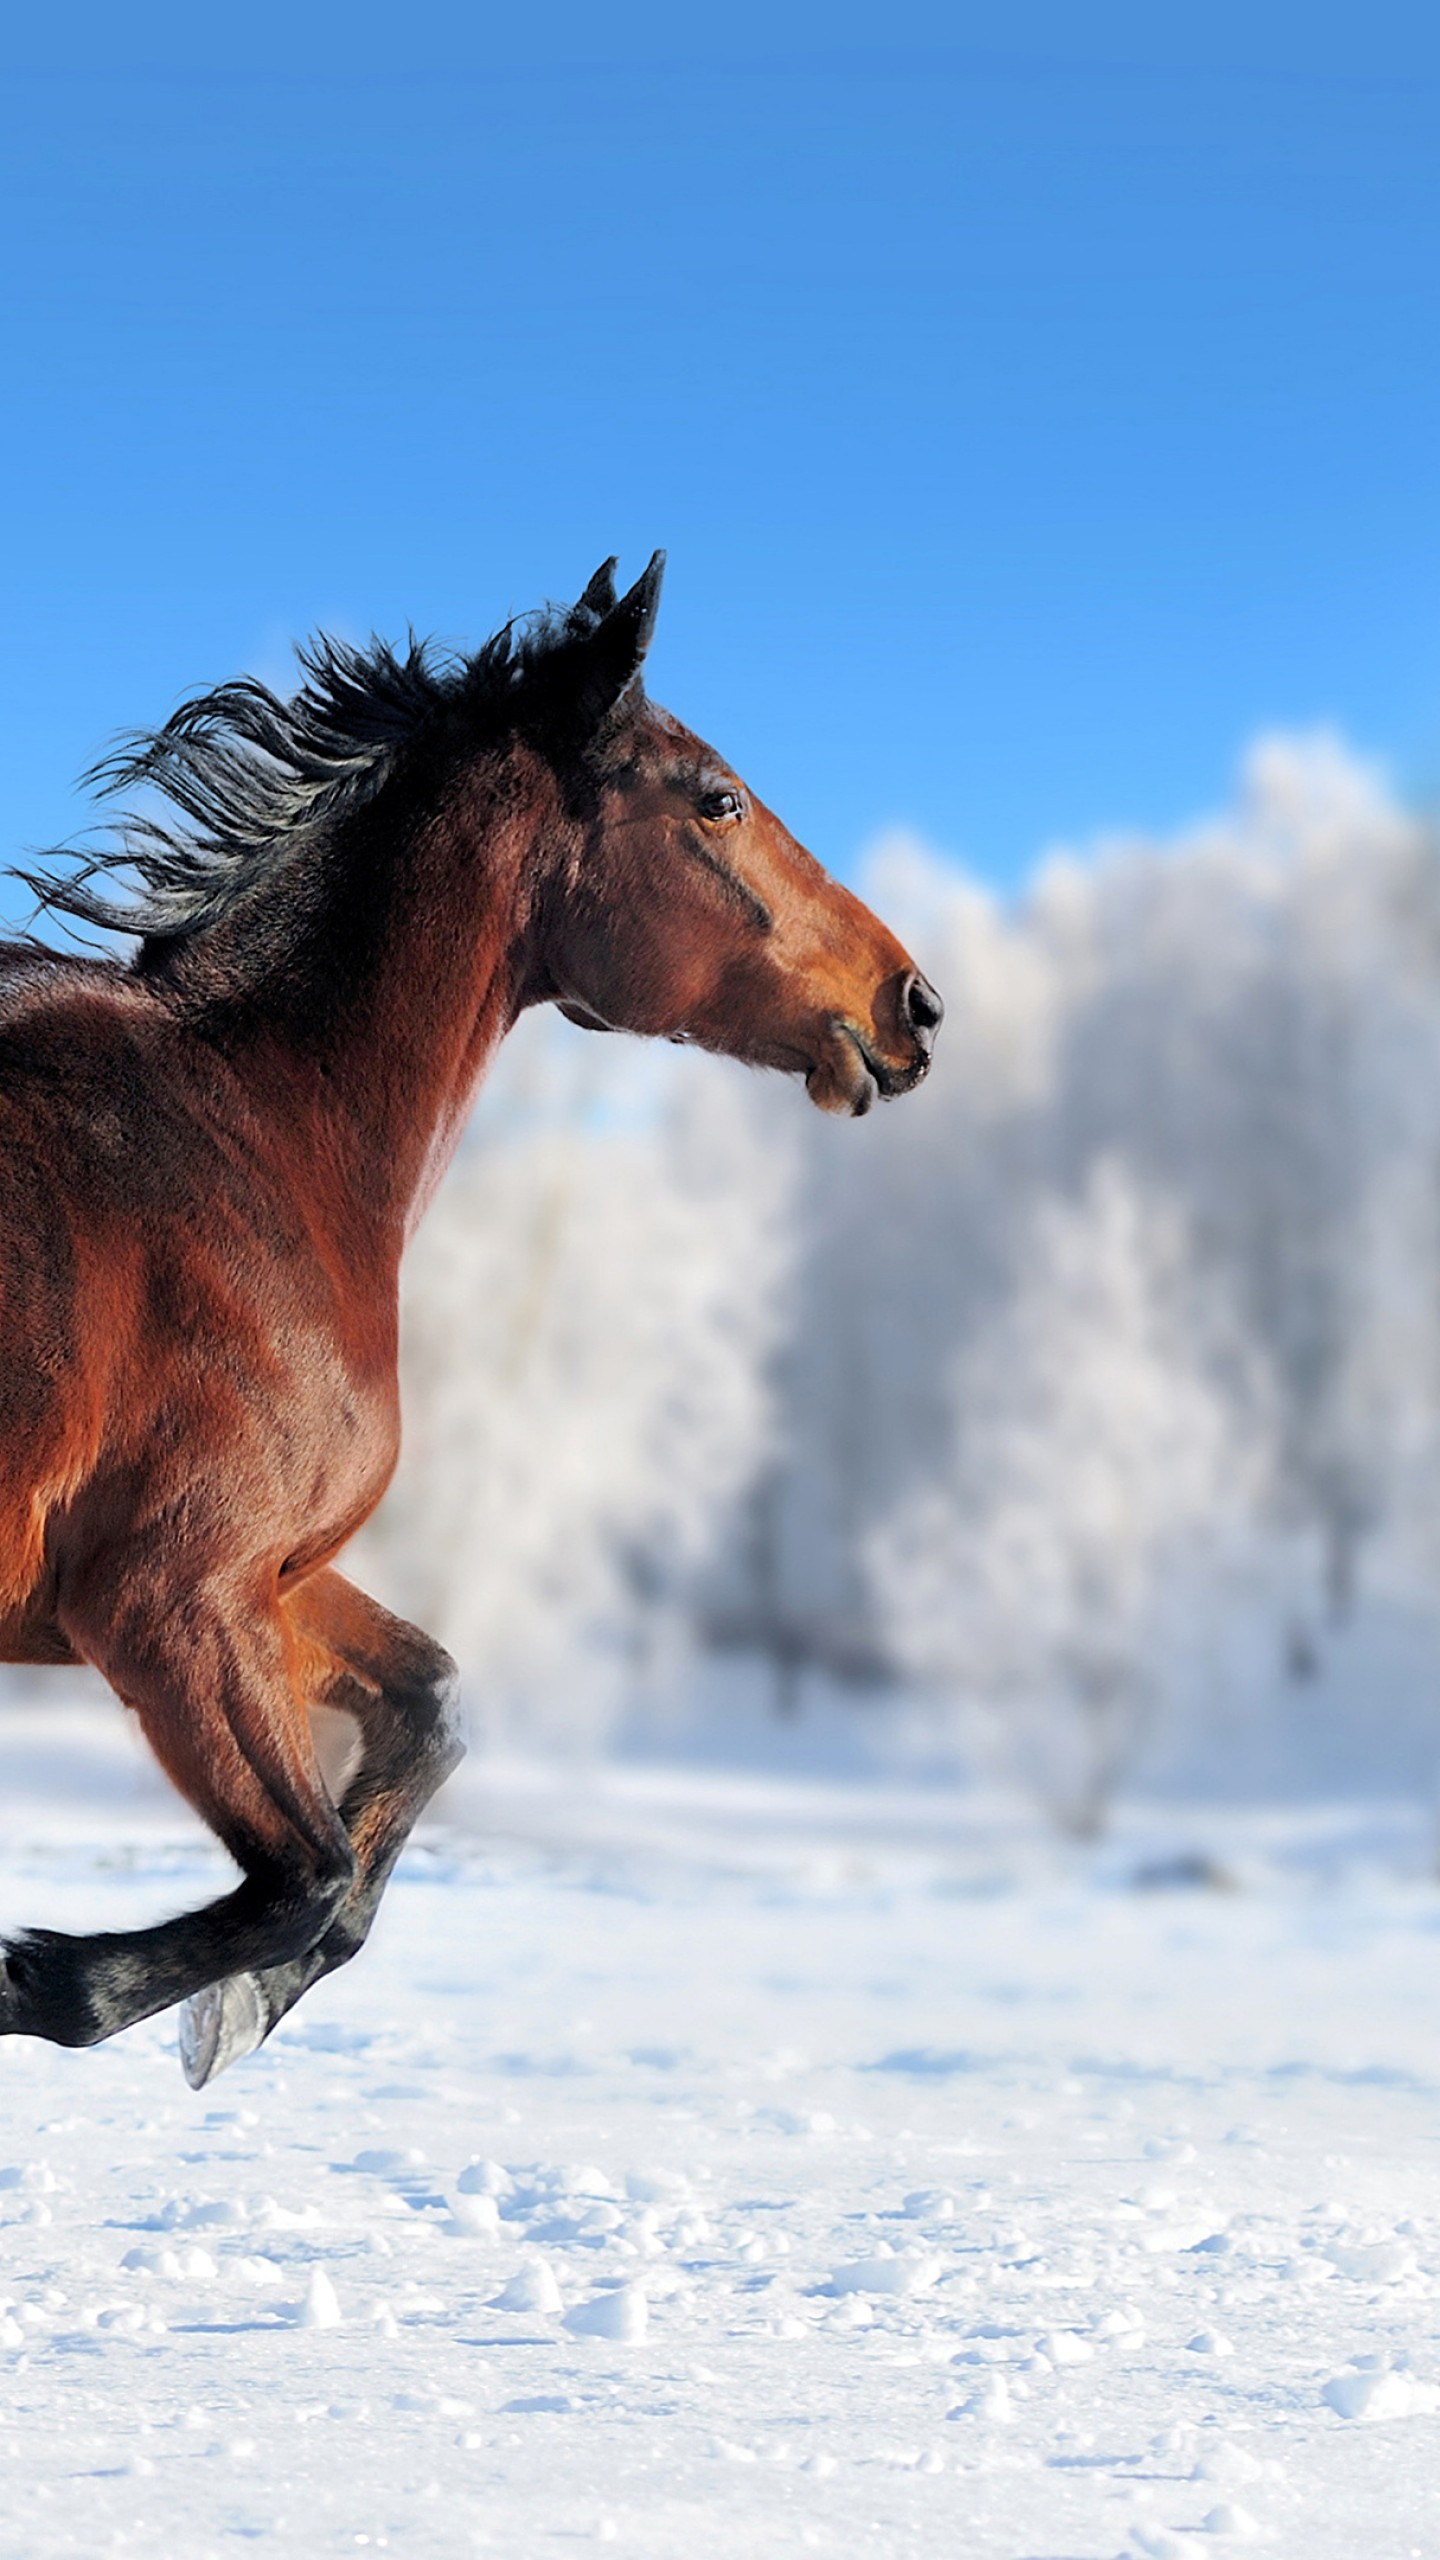 Cute Wallpapers With Quotes Download Wallpaper Horse Cute Animals Snow Winter 4k Animals